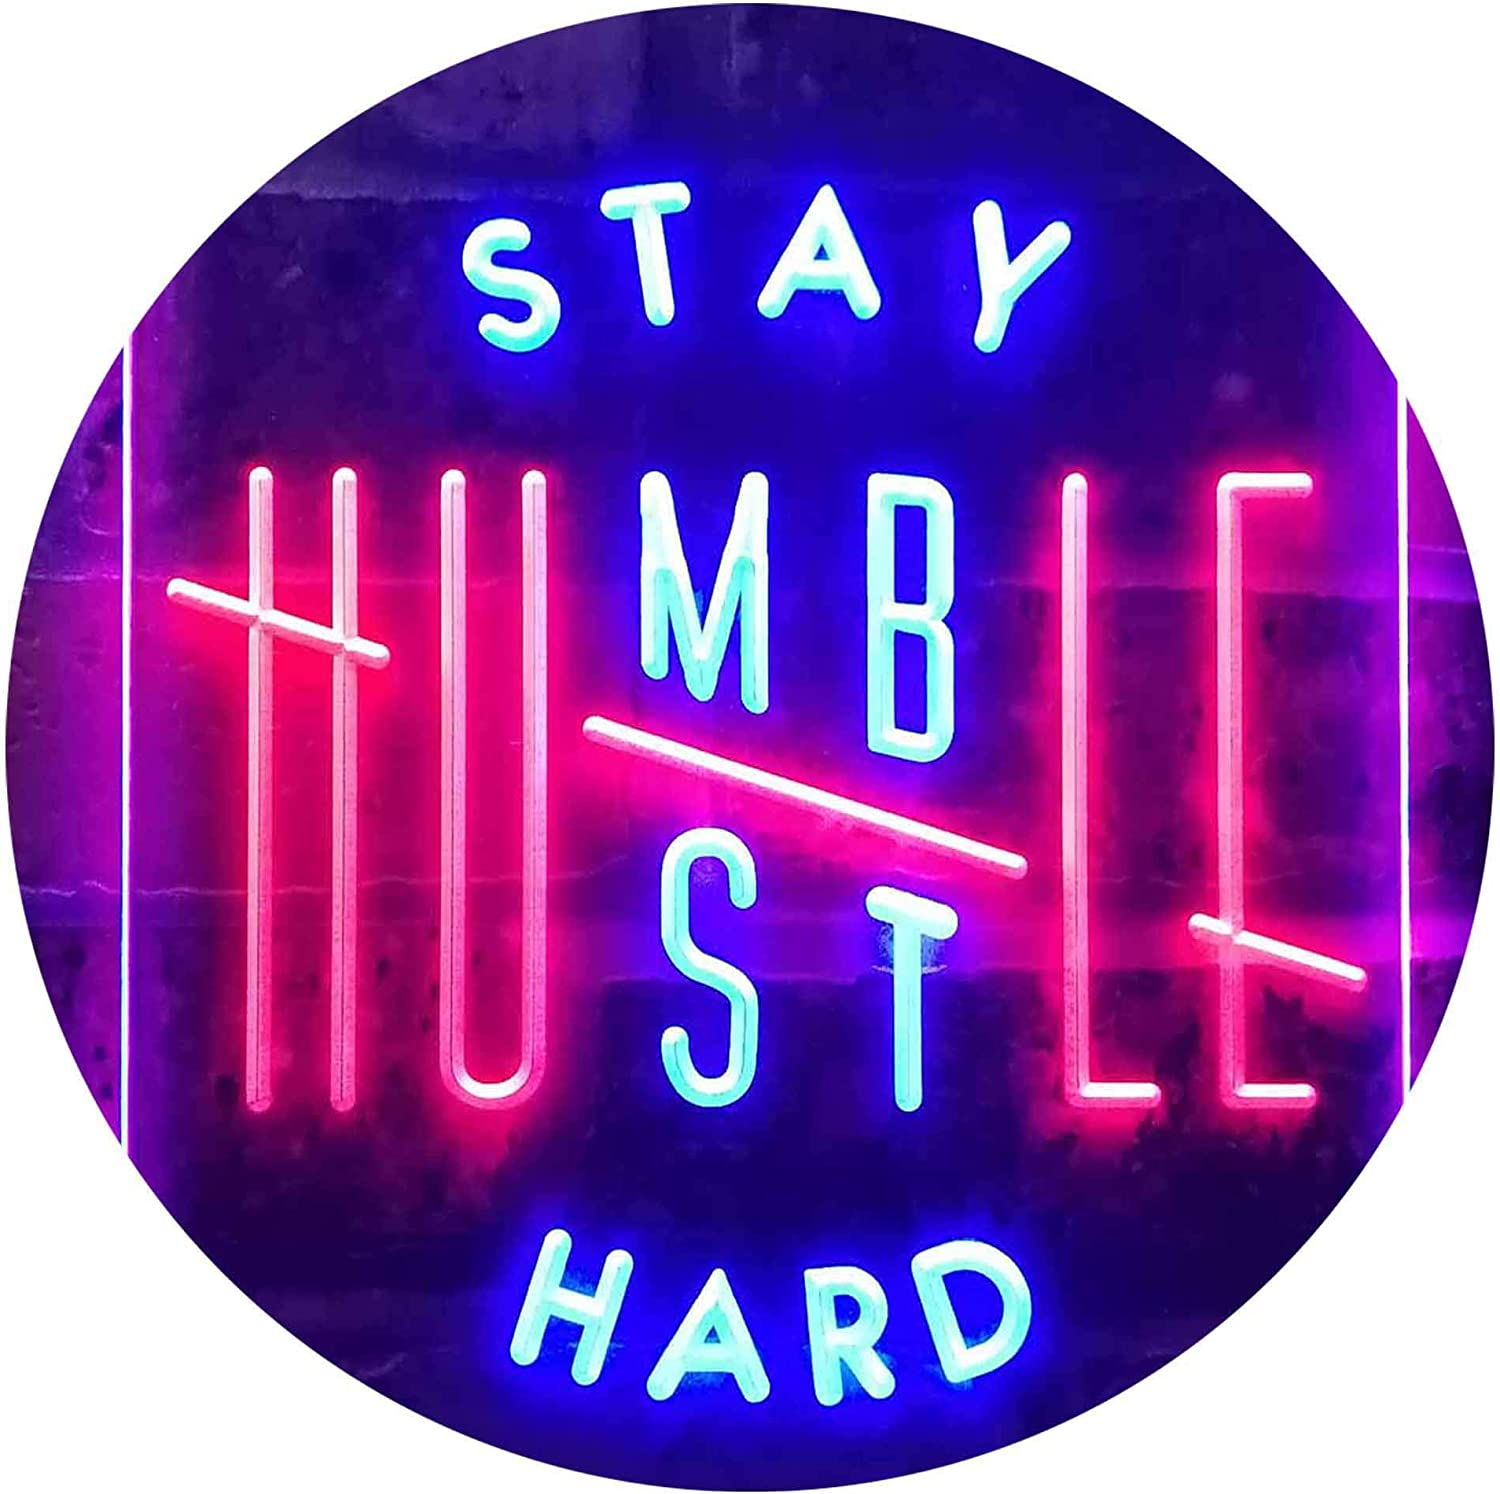 ADVPRO Stay Regular store Humble Hustle Manufacturer direct delivery Hard Room Color LED Neon Display Dual